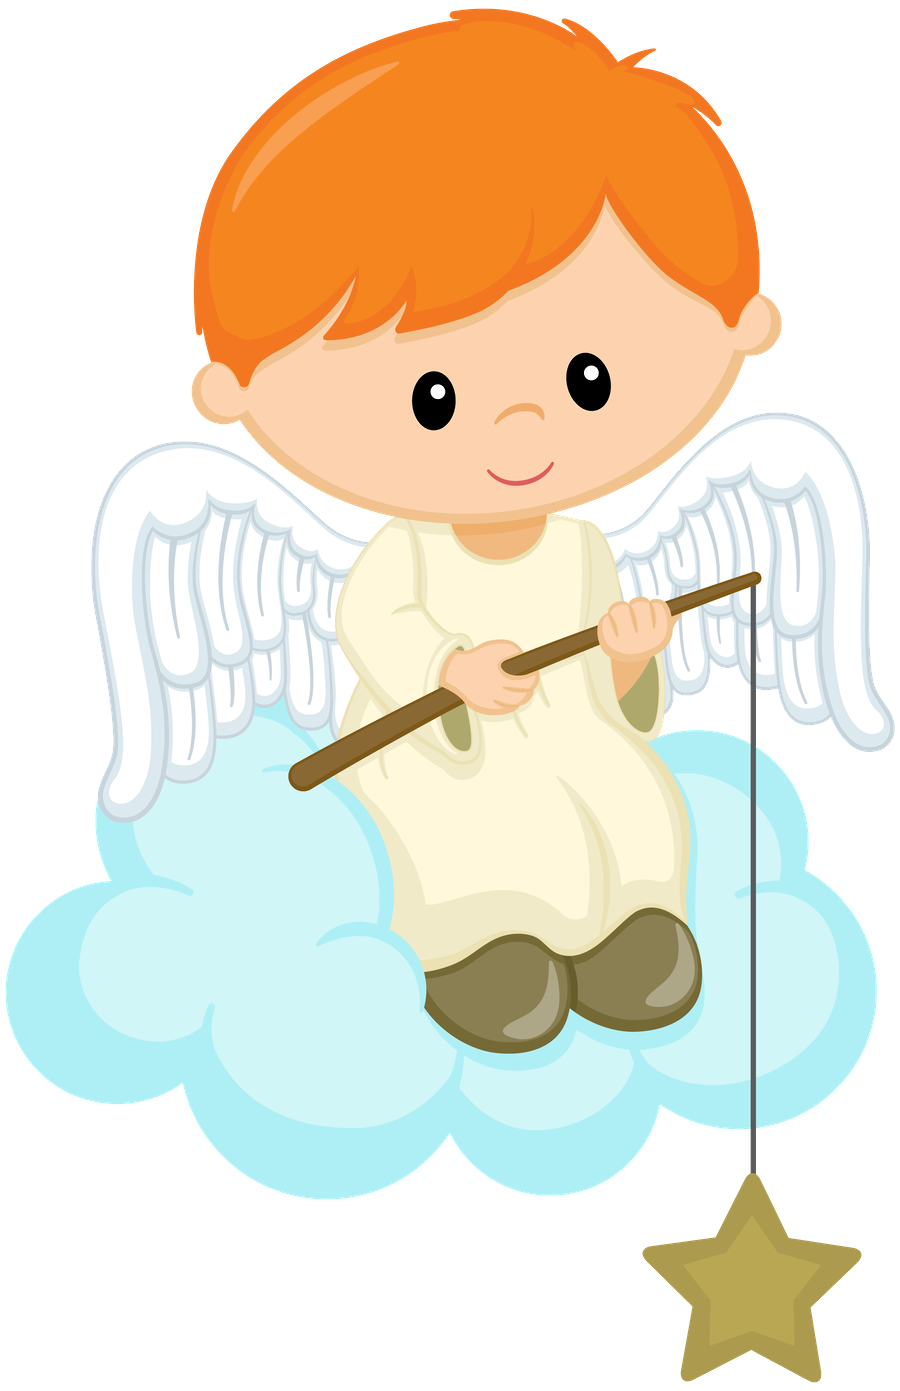 Christmas angels singing clipart image free download Pin by Jeny Chique on Bautizo para Niños | Pinterest | Communion image free download